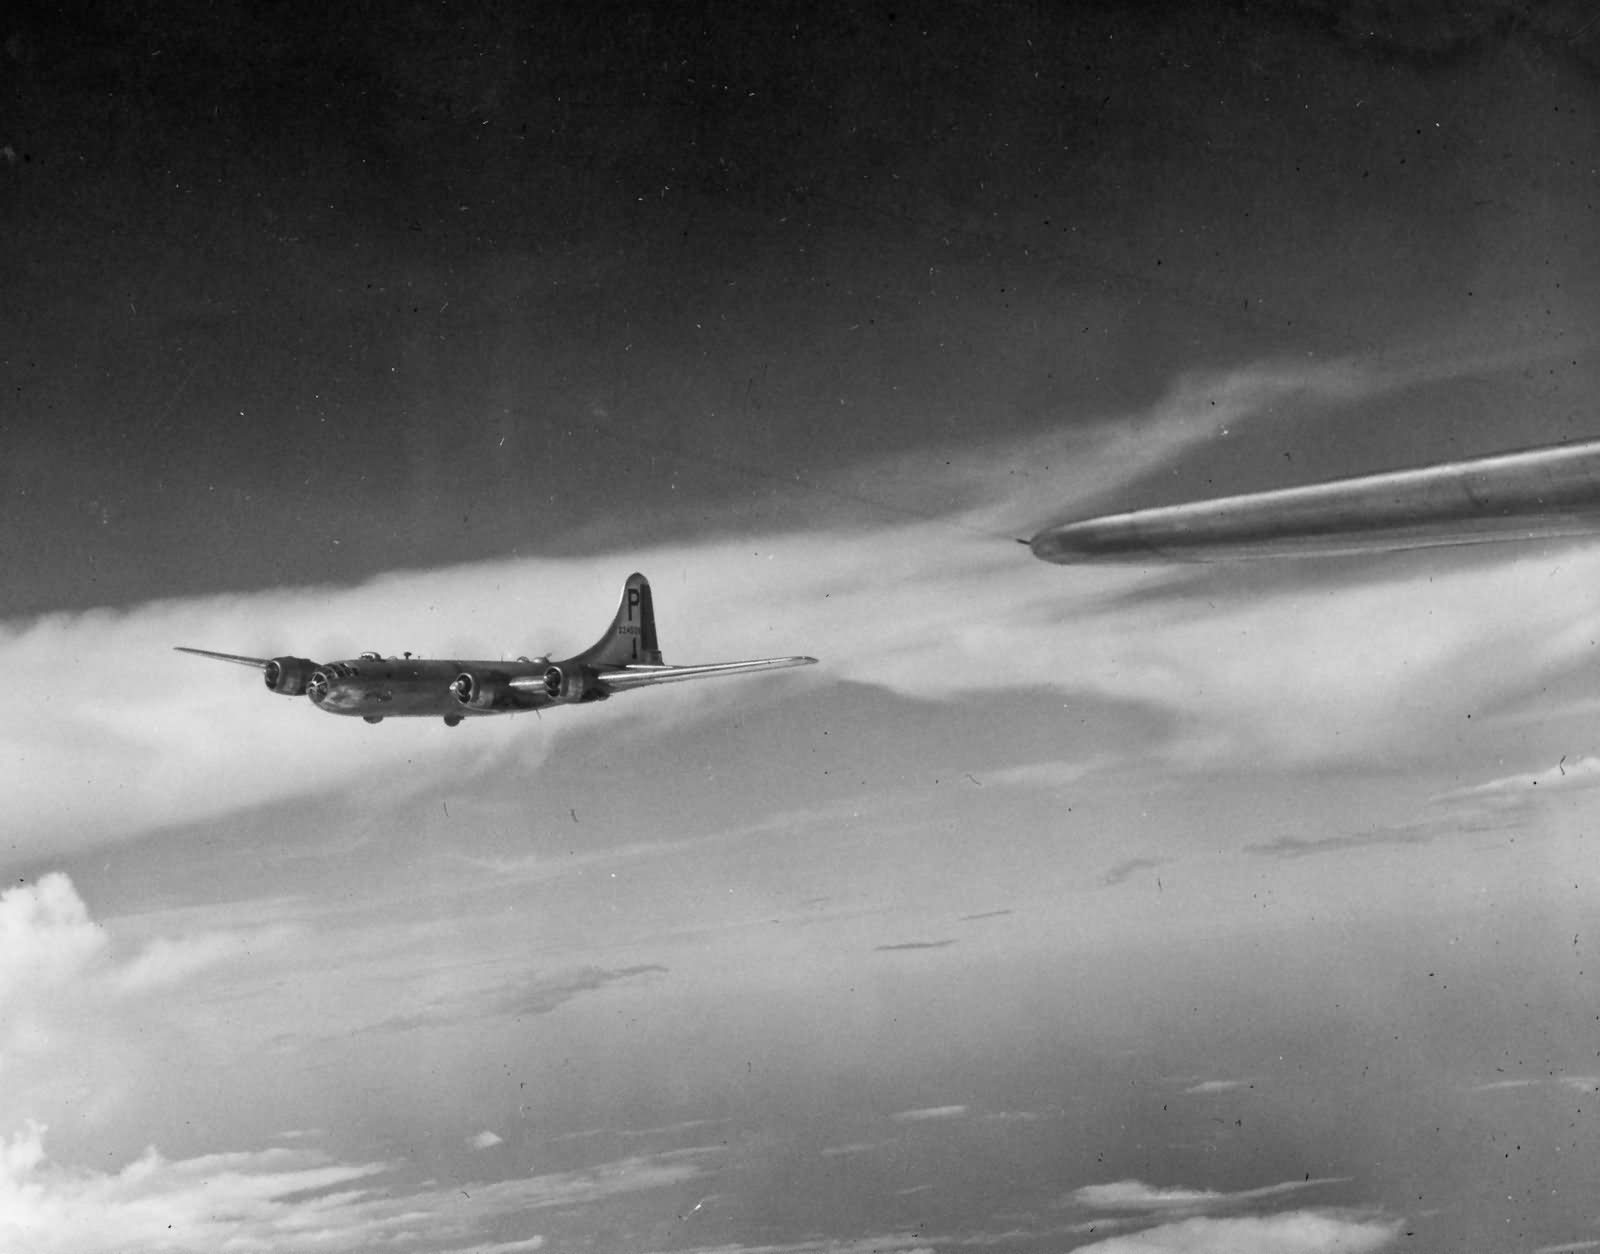 Boeing B-29 462nd raid on Rangoon on November 3 1944